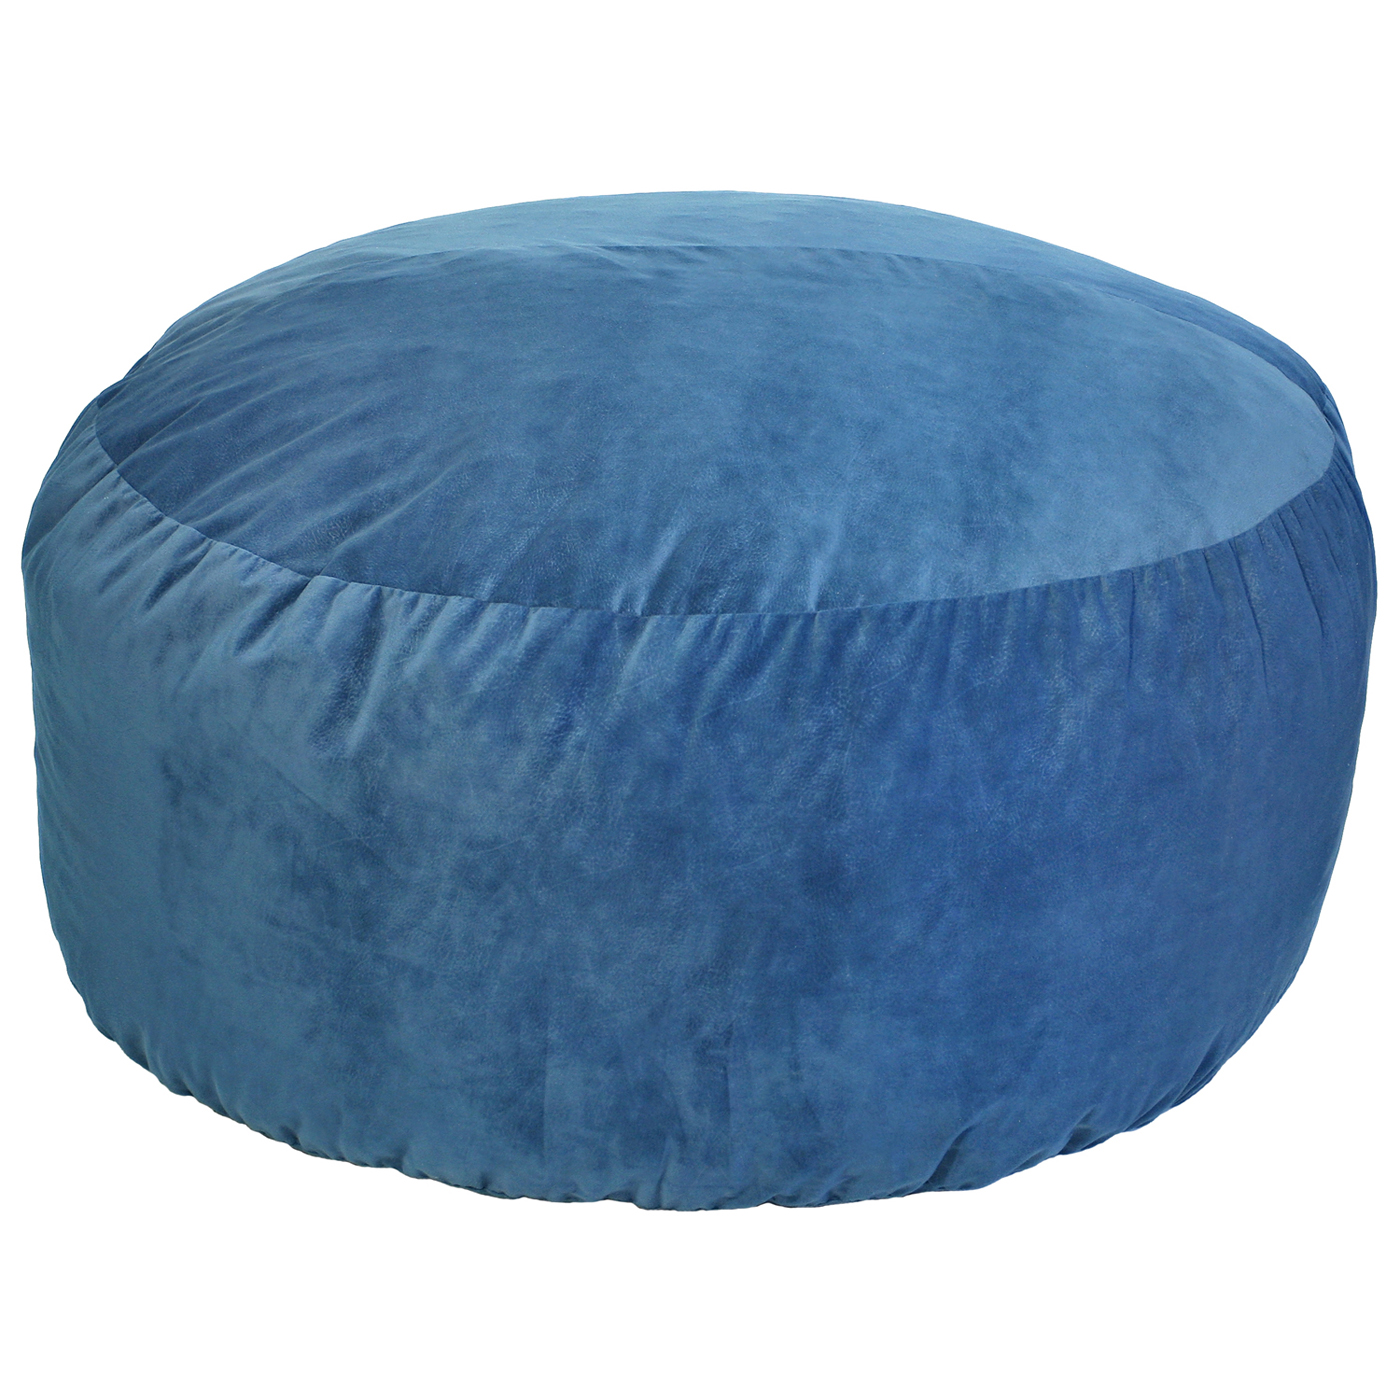 Foam Bean Bag Chair 5 Comfort Cloud Foam Bean Bag By Hudson In Bean Bag Chairs